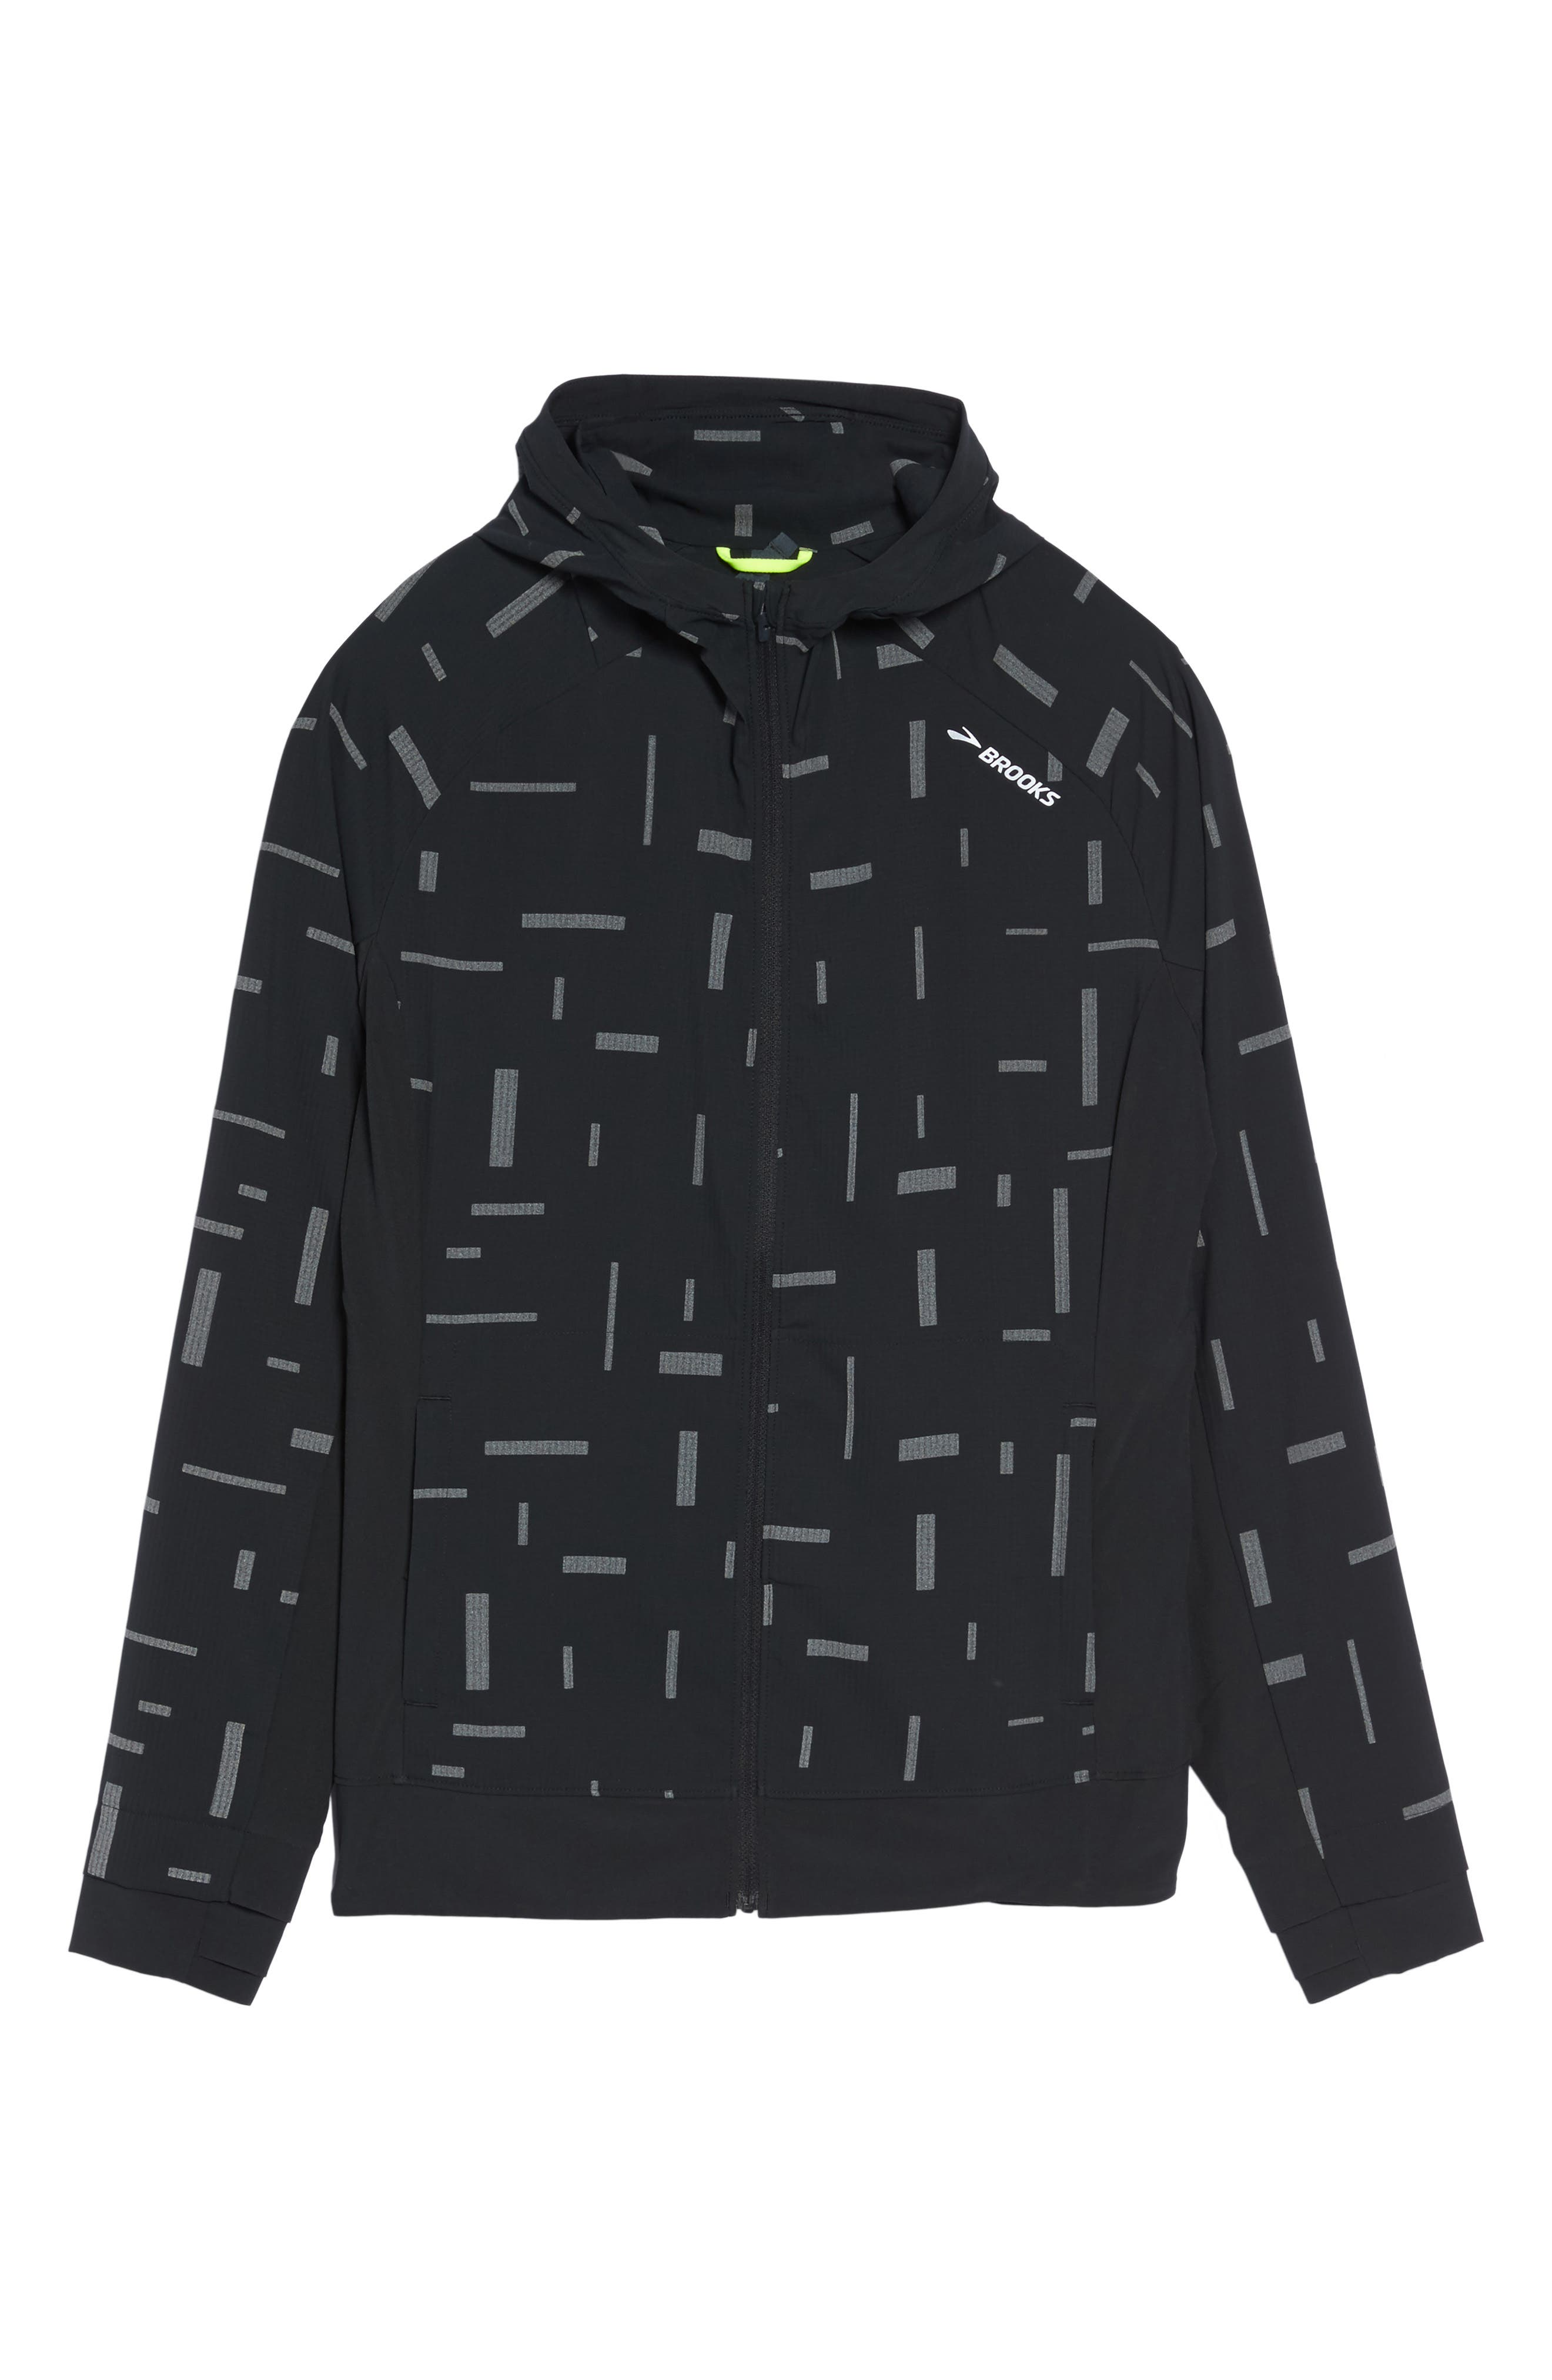 Canopy SE Reflective Running Jacket,                             Alternate thumbnail 6, color,                             Comet Reflective